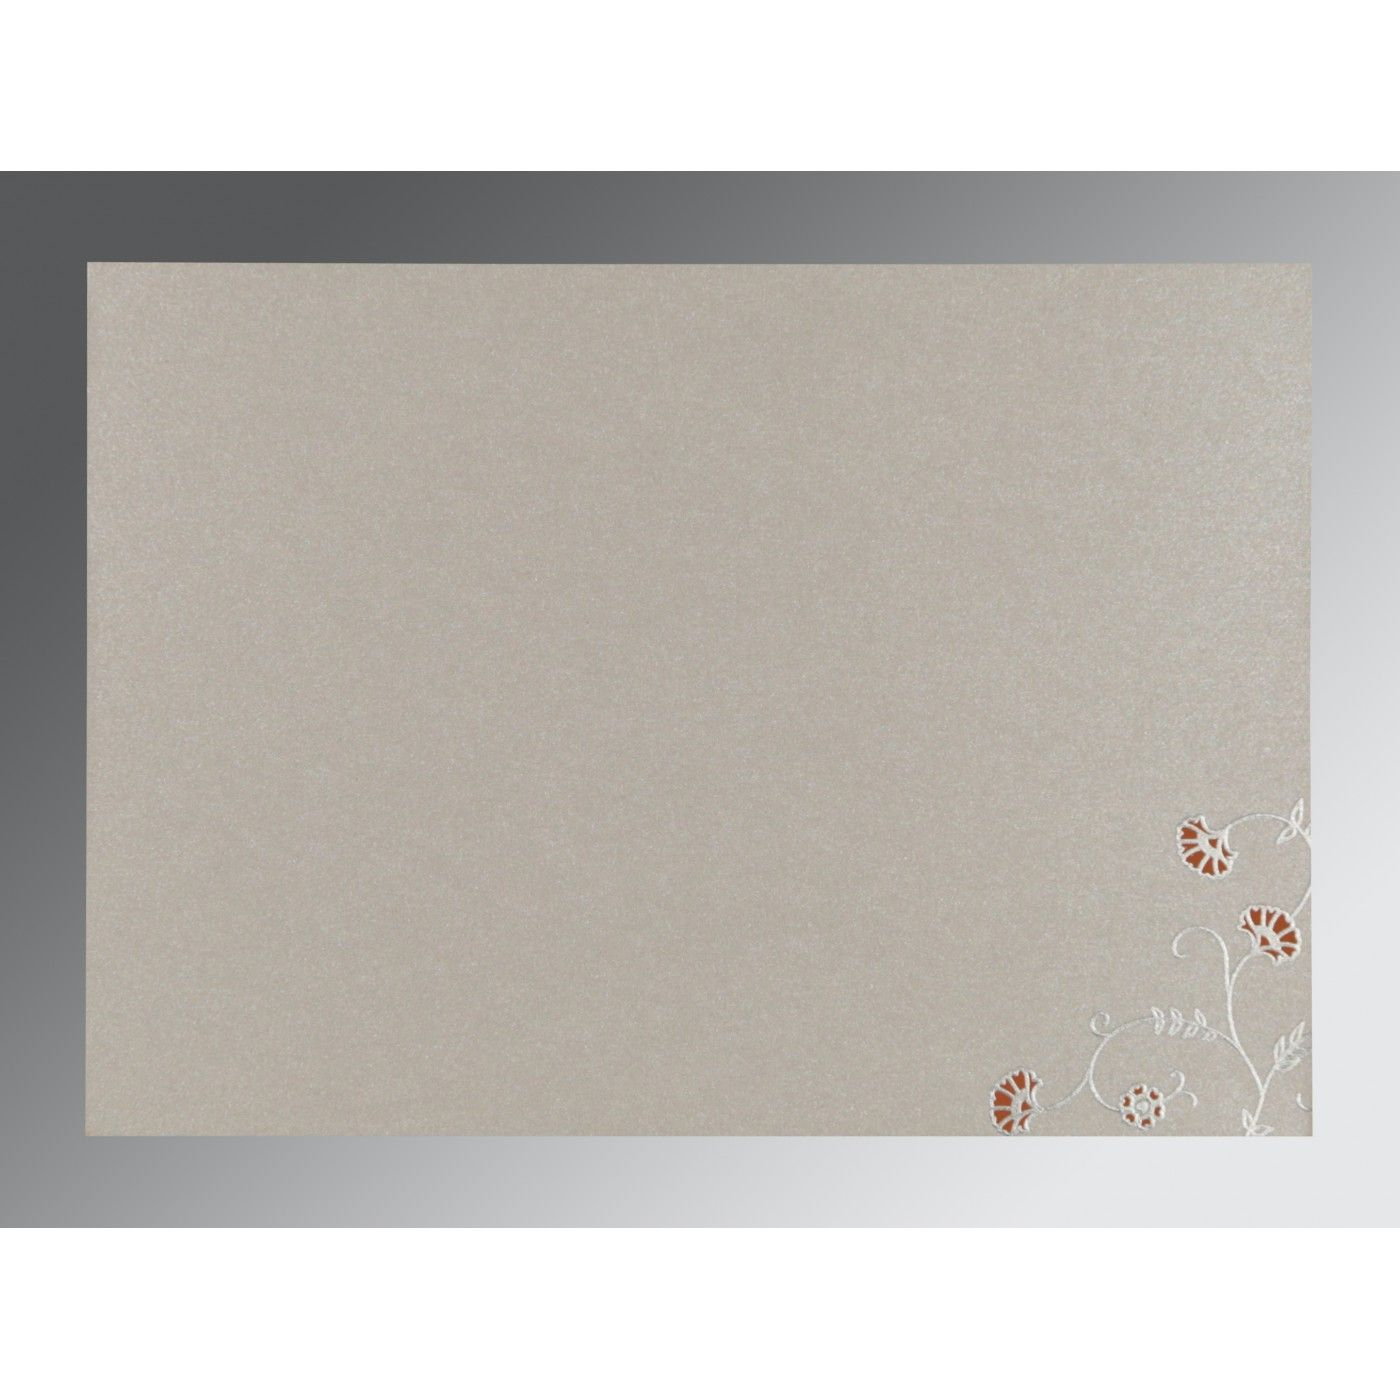 PEACH SHIMMERY FLORAL THEMED - SCREEN PRINTED WEDDING INVITATION : CD-8248E - IndianWeddingCards